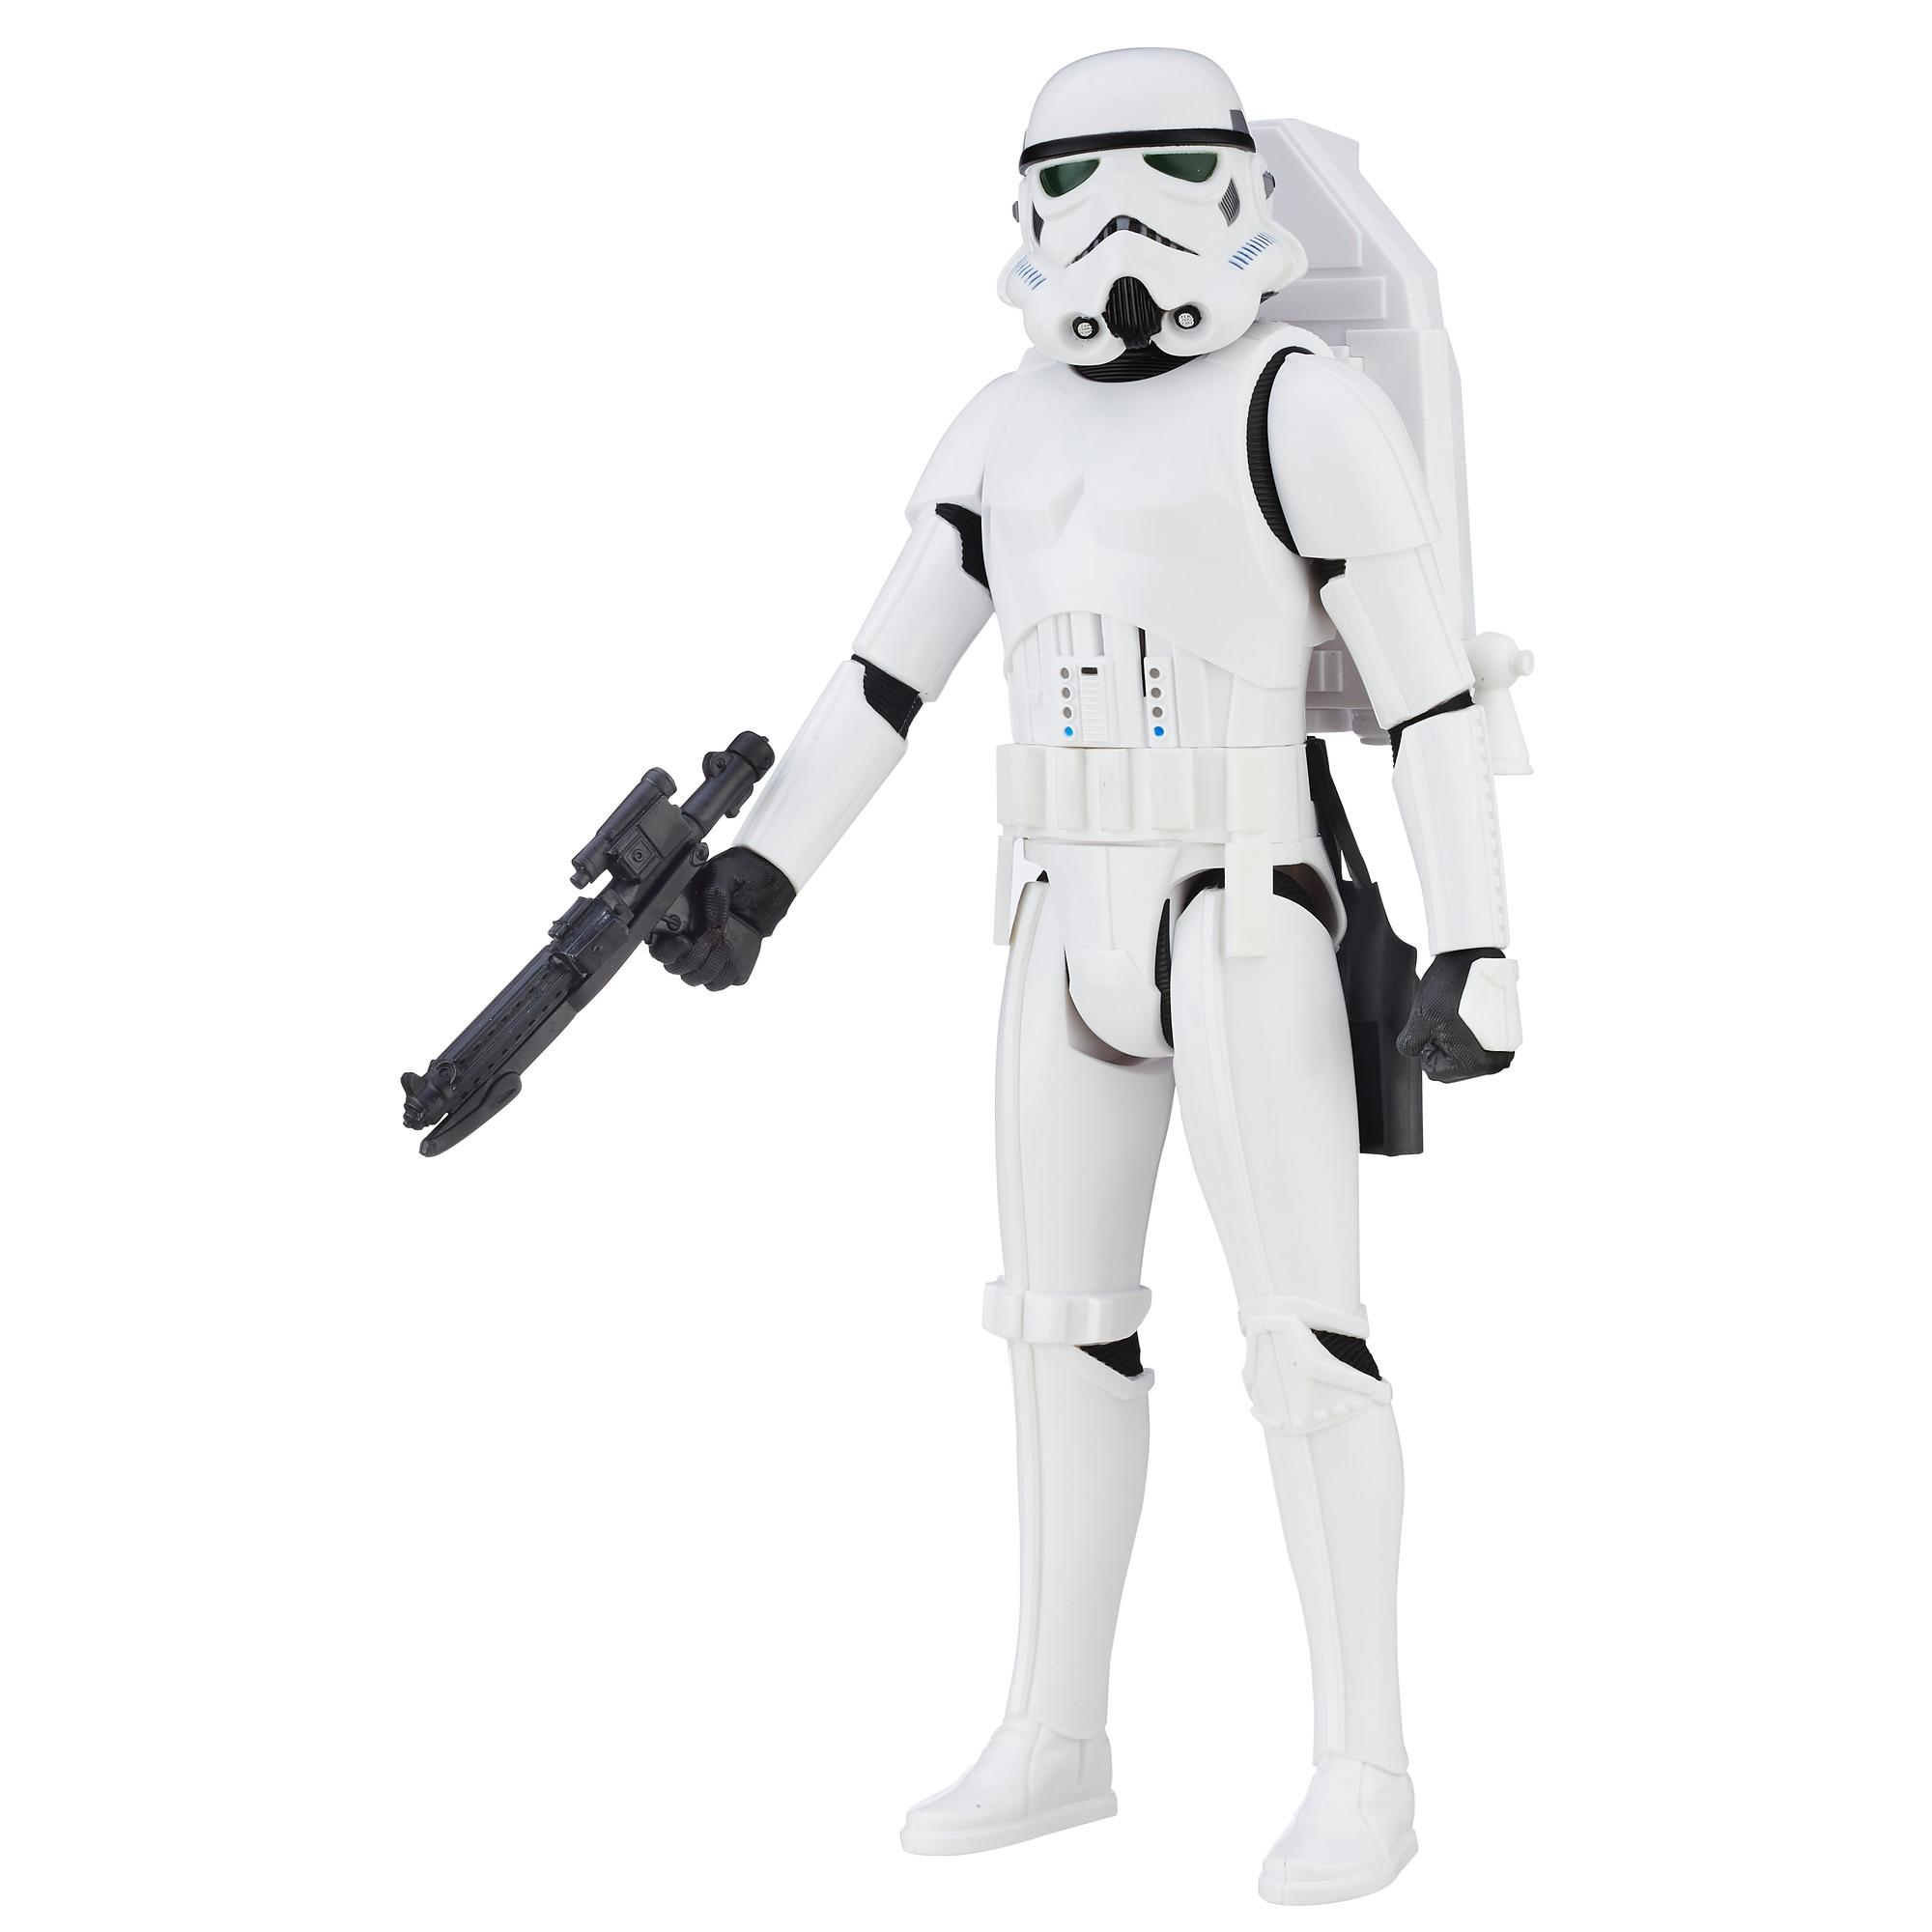 Star Wars Interactech Imperial Stormtrooper Figure